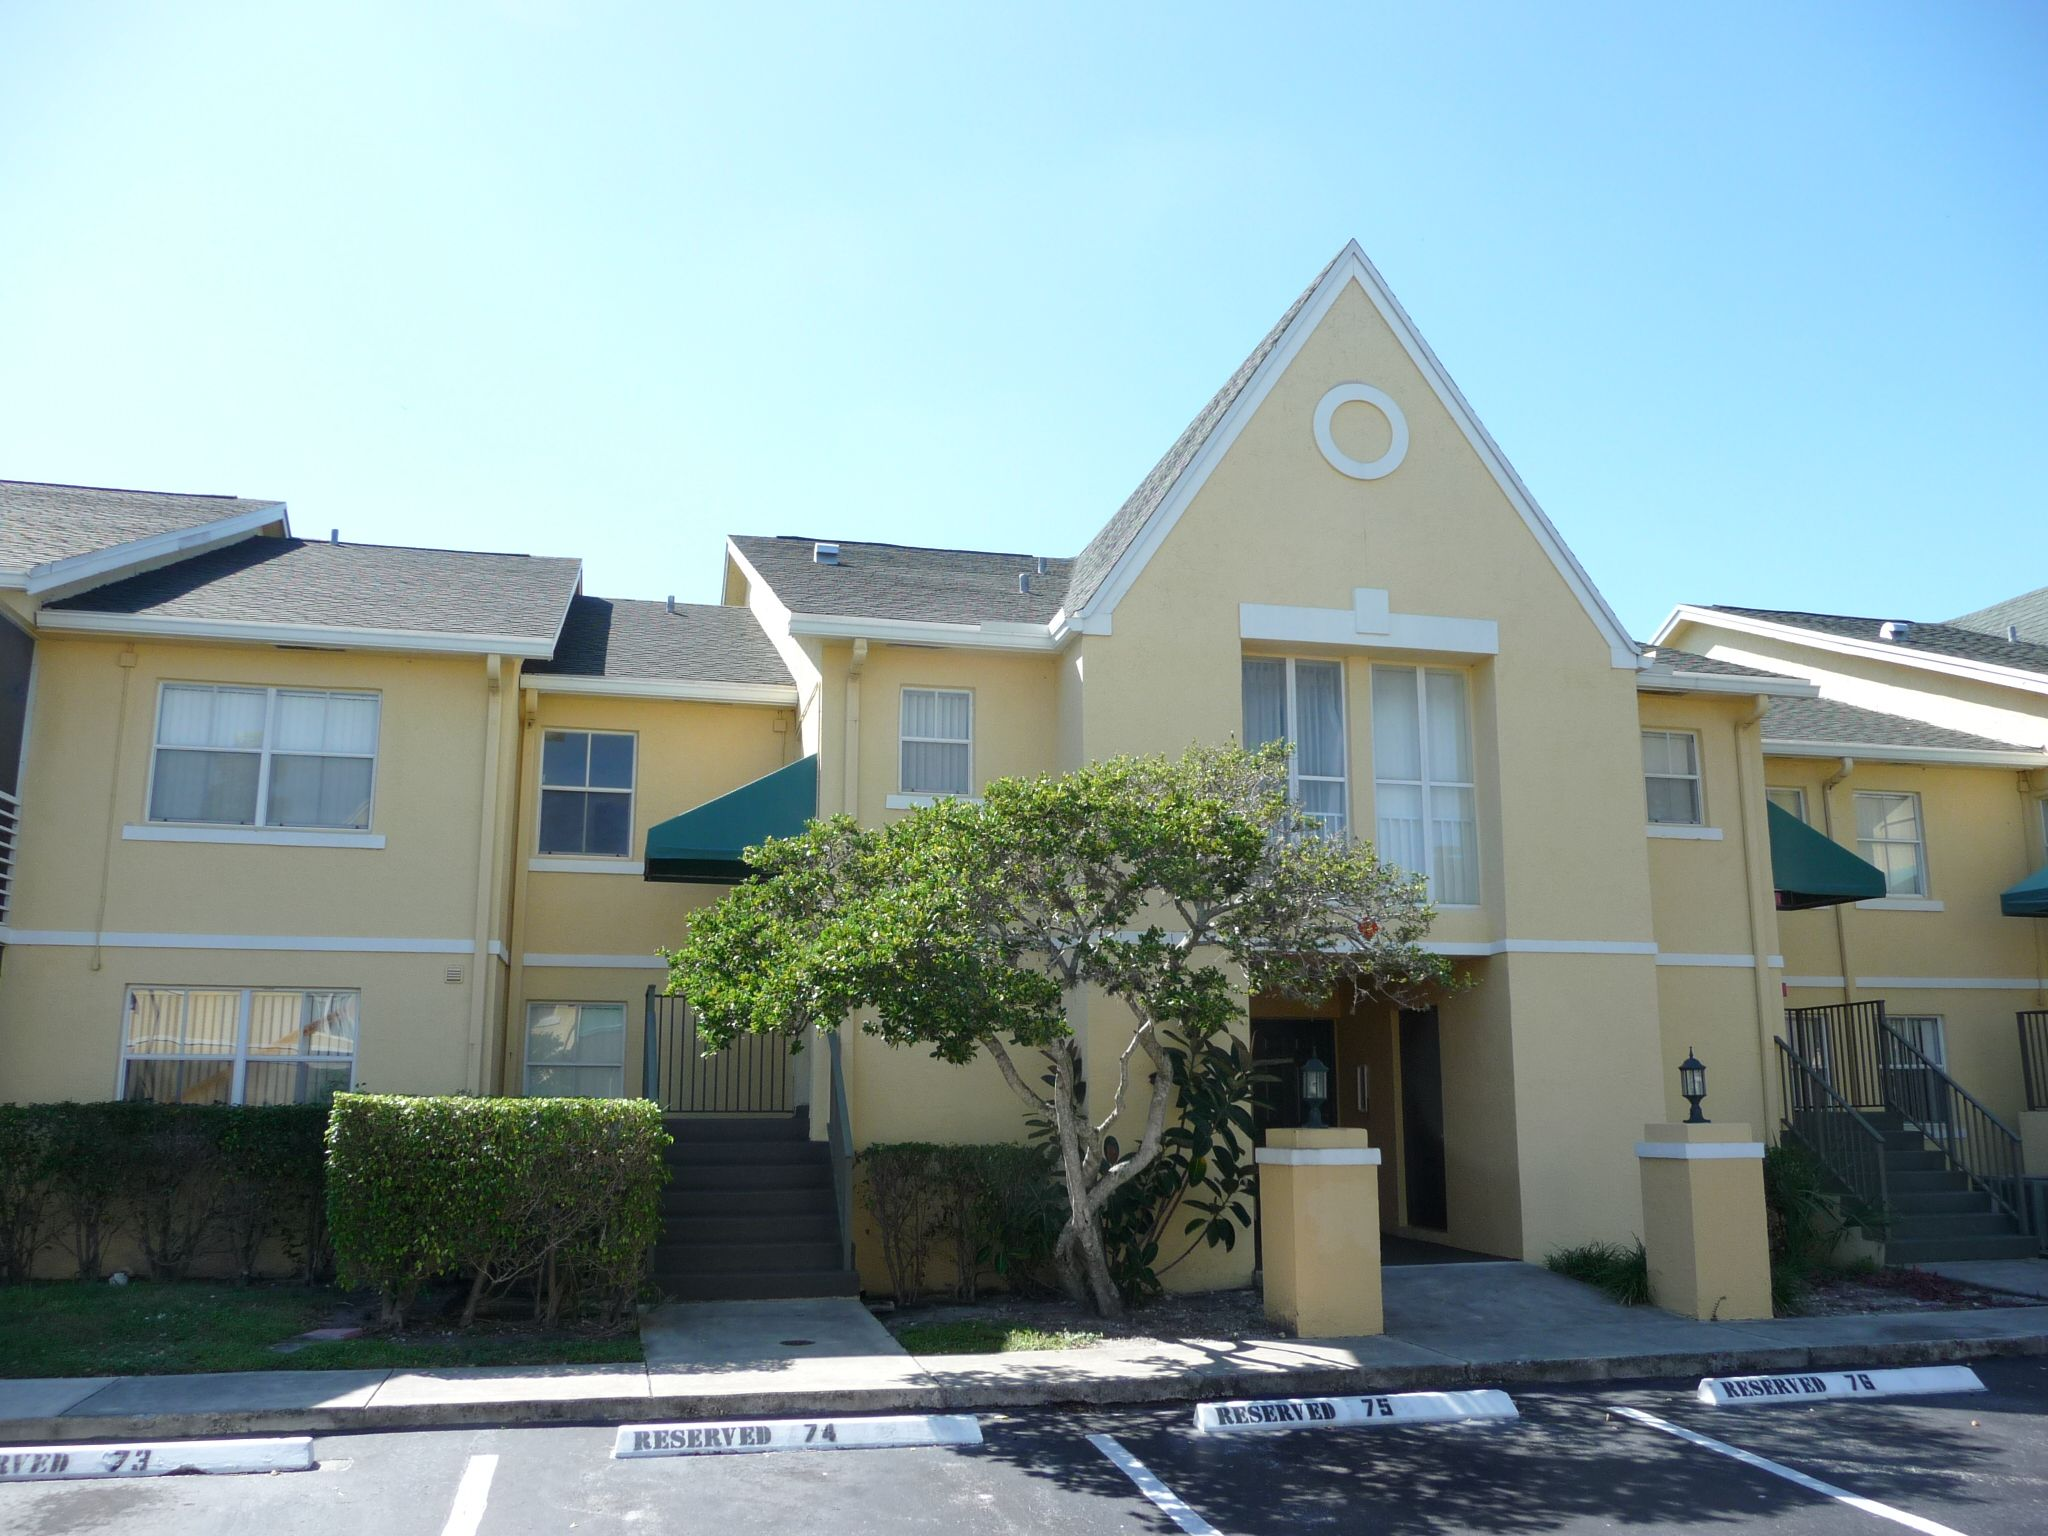 2813 N Course Dr., Pompano Beach, FL. A #foreclosure in Breezes at ...